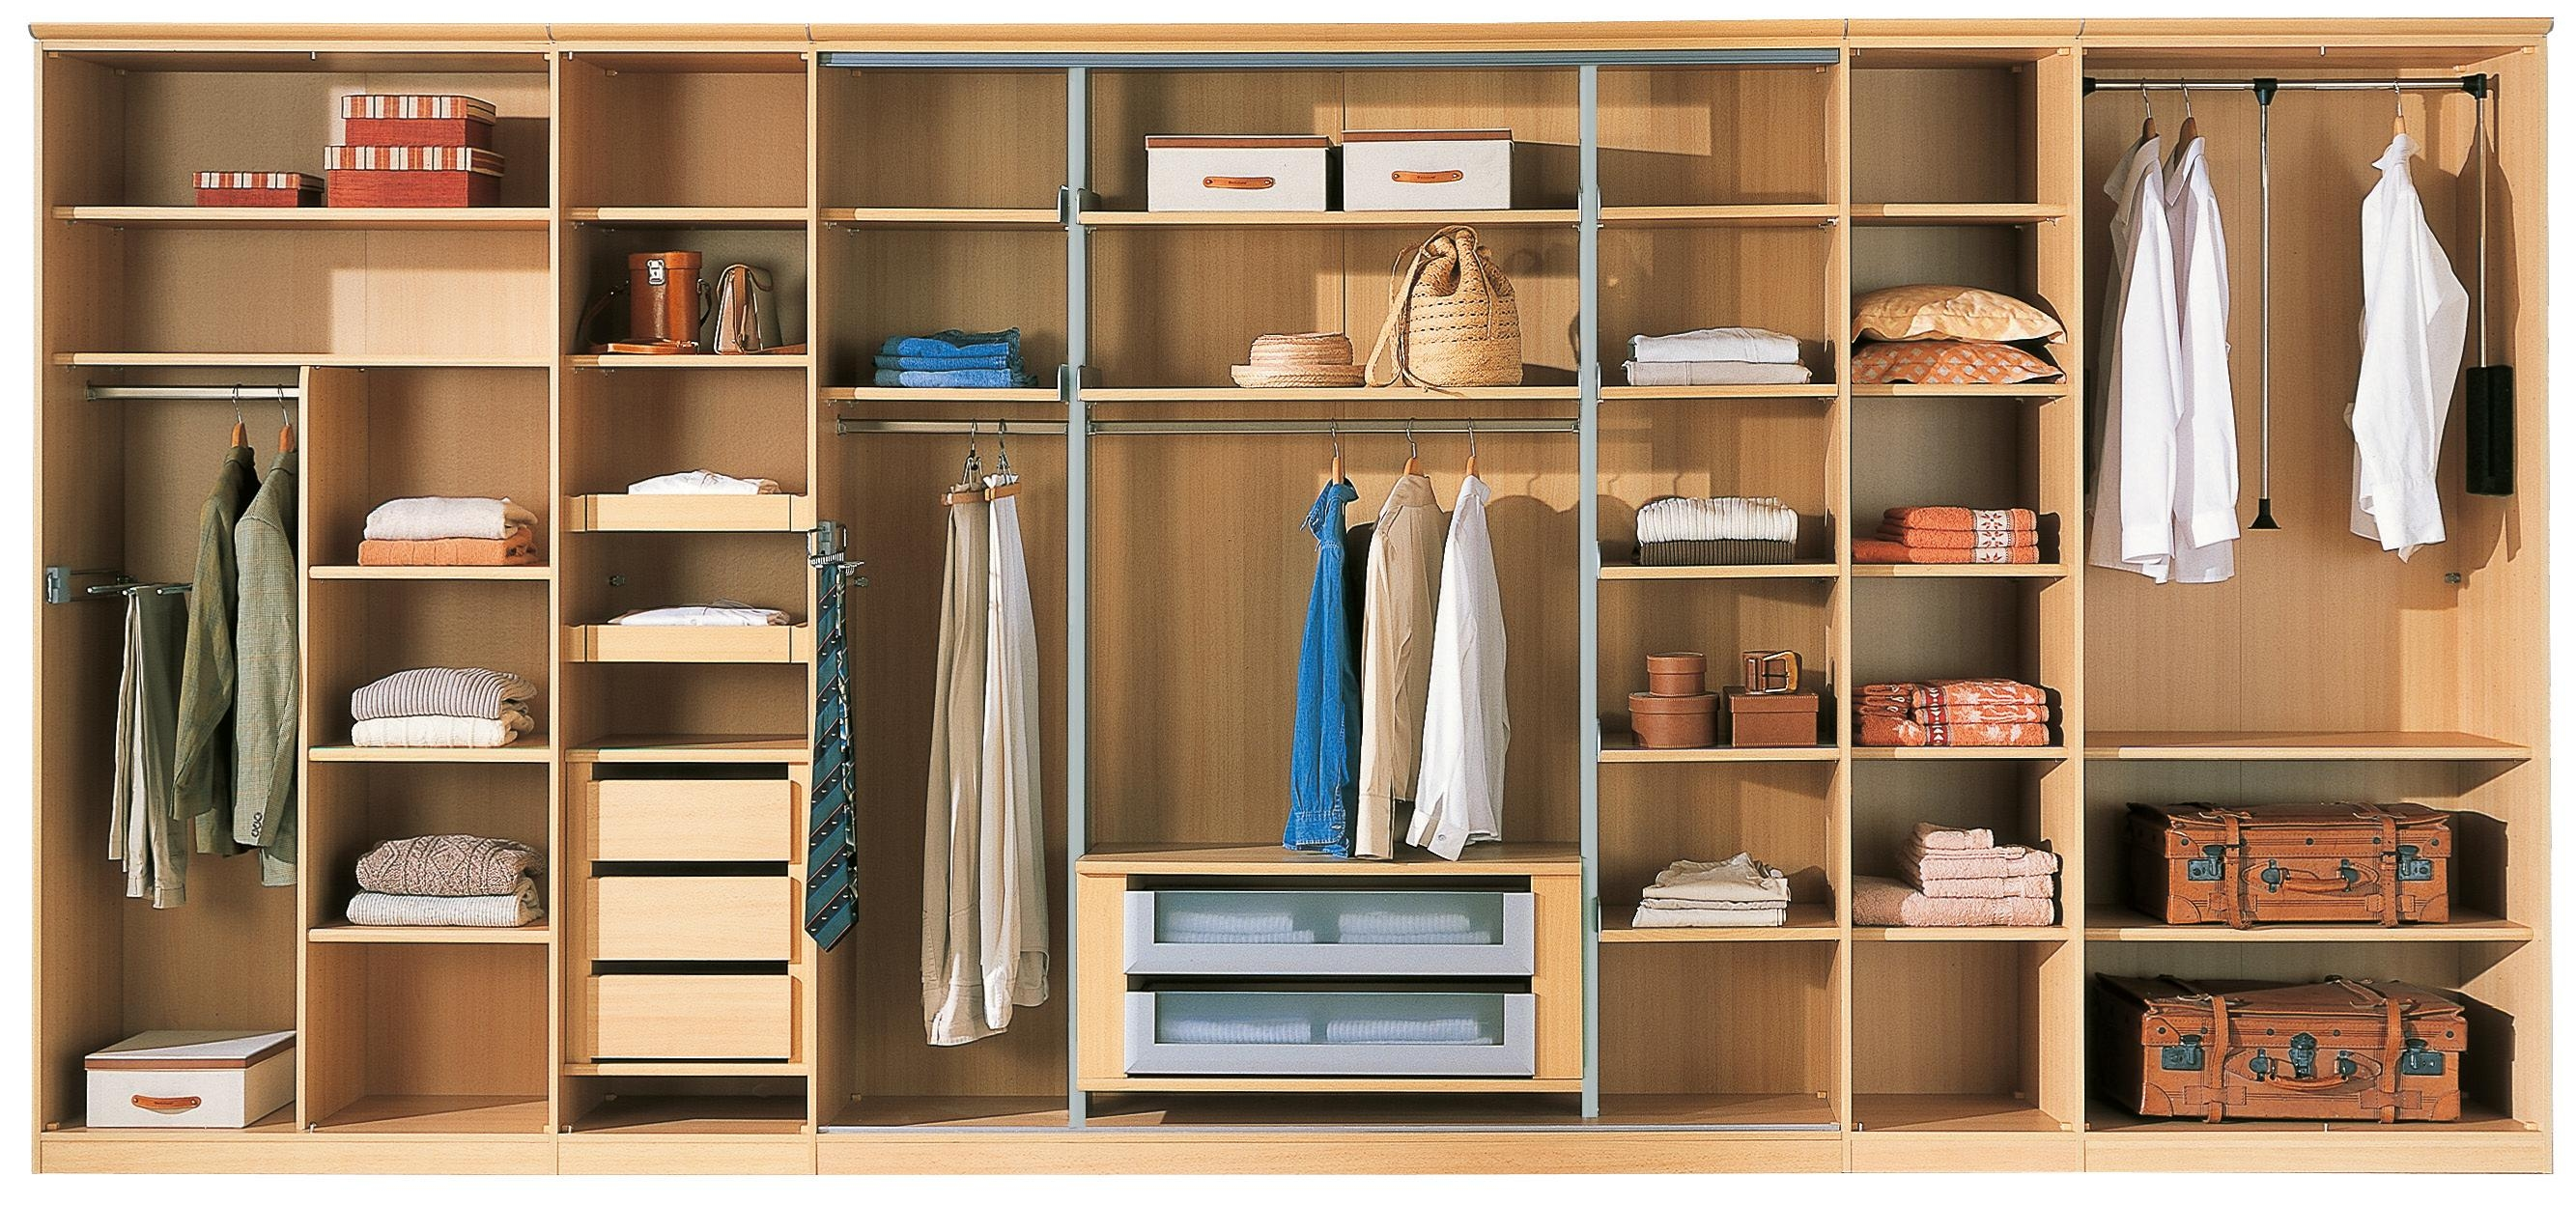 Bedroom Wardrobe Interior Shelves Design Ideas 2017 2018 Within Wardrobe With Shelves And Drawers (View 4 of 15)